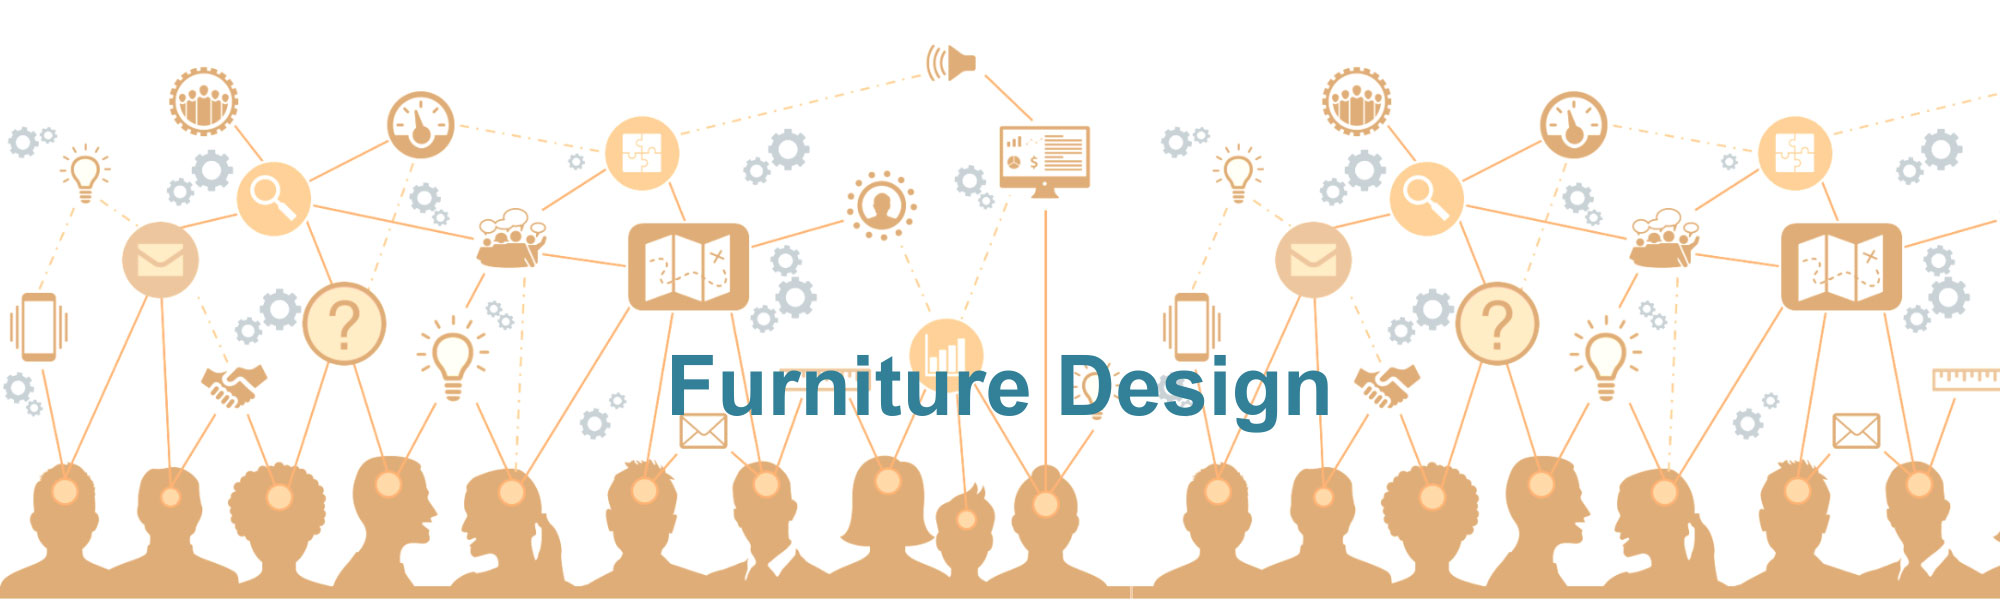 furniture-design image